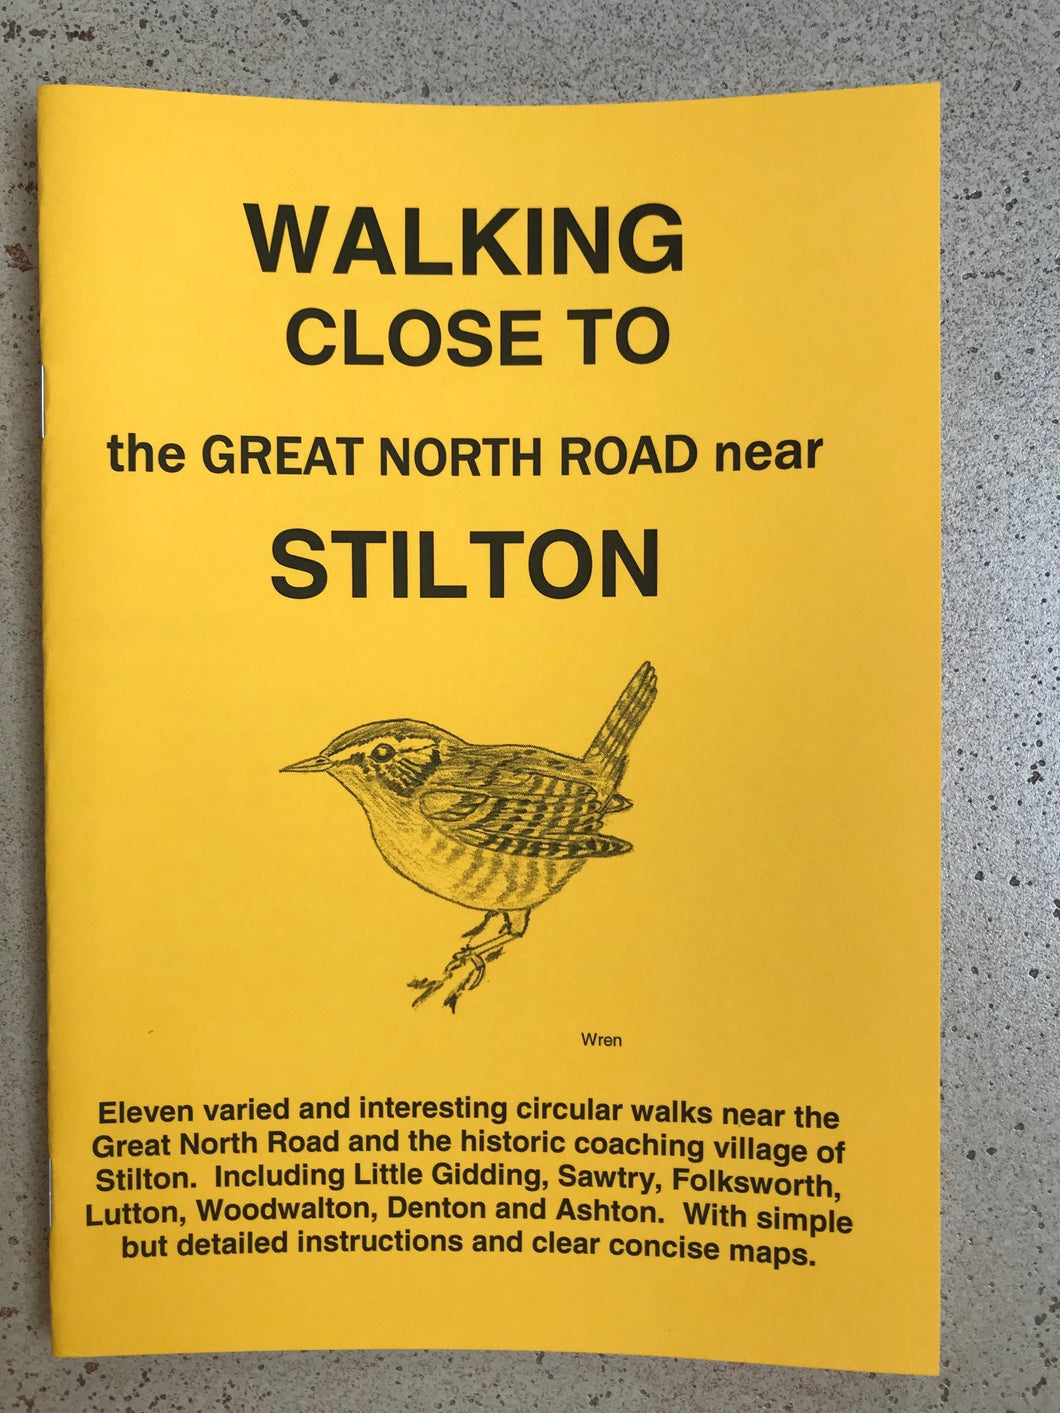 Walks - Walking close to the Great North Road near Stilton